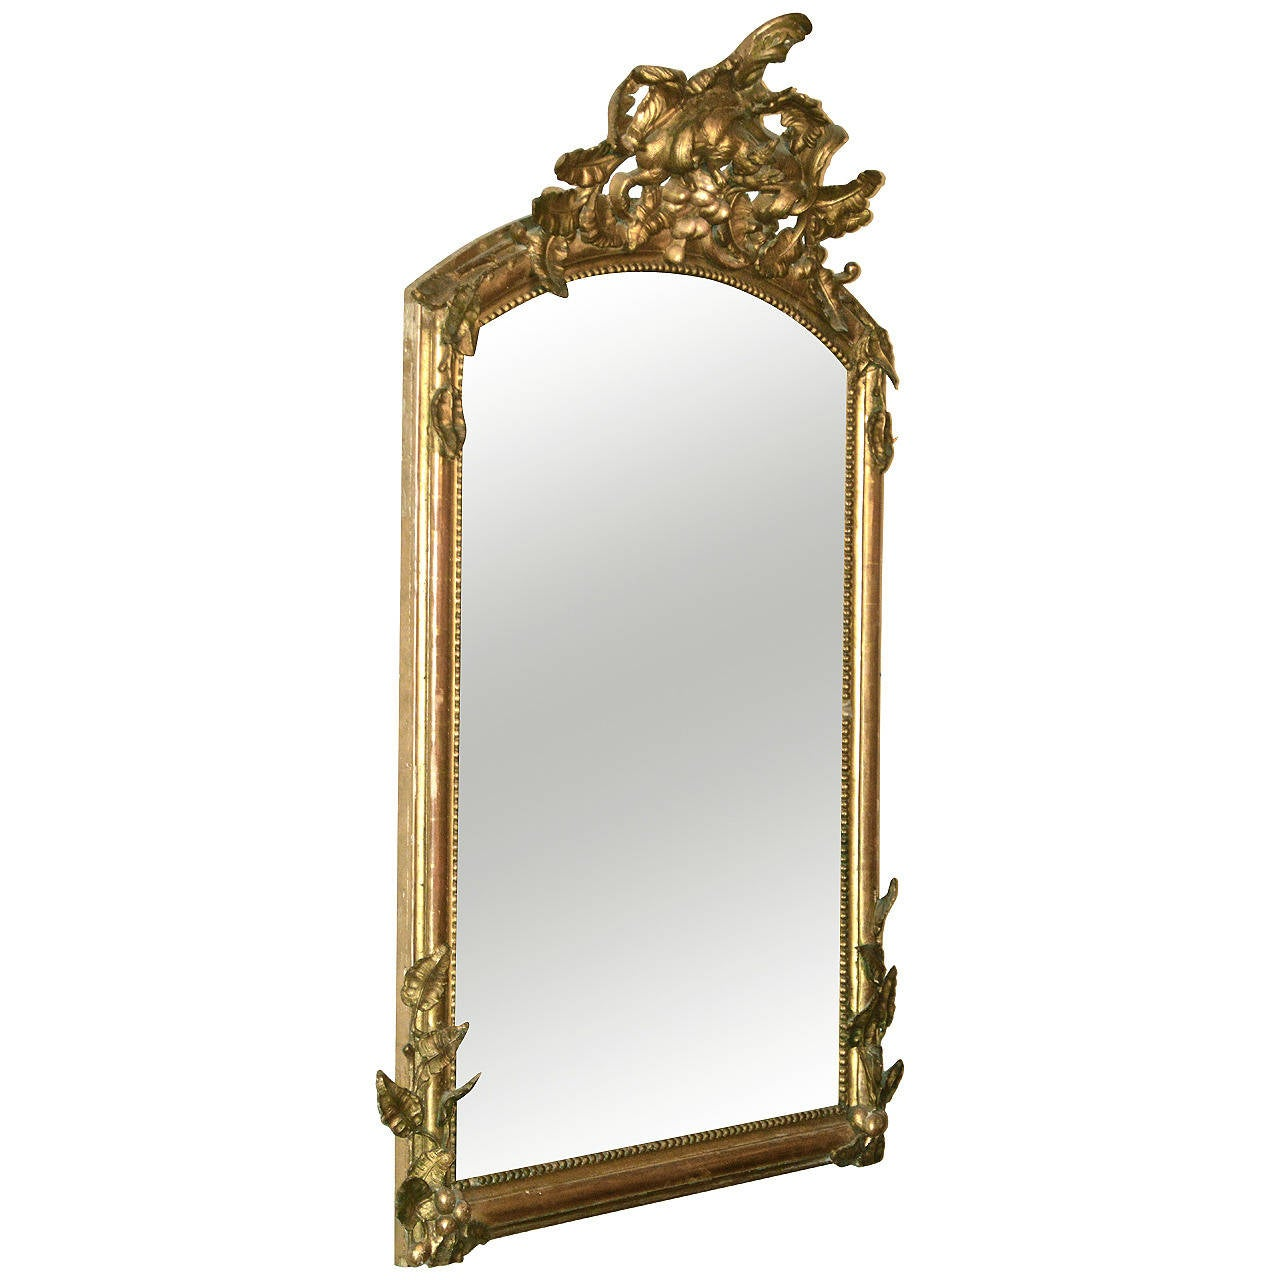 large rococo style 19th century french gilt mirror at 1stdibs